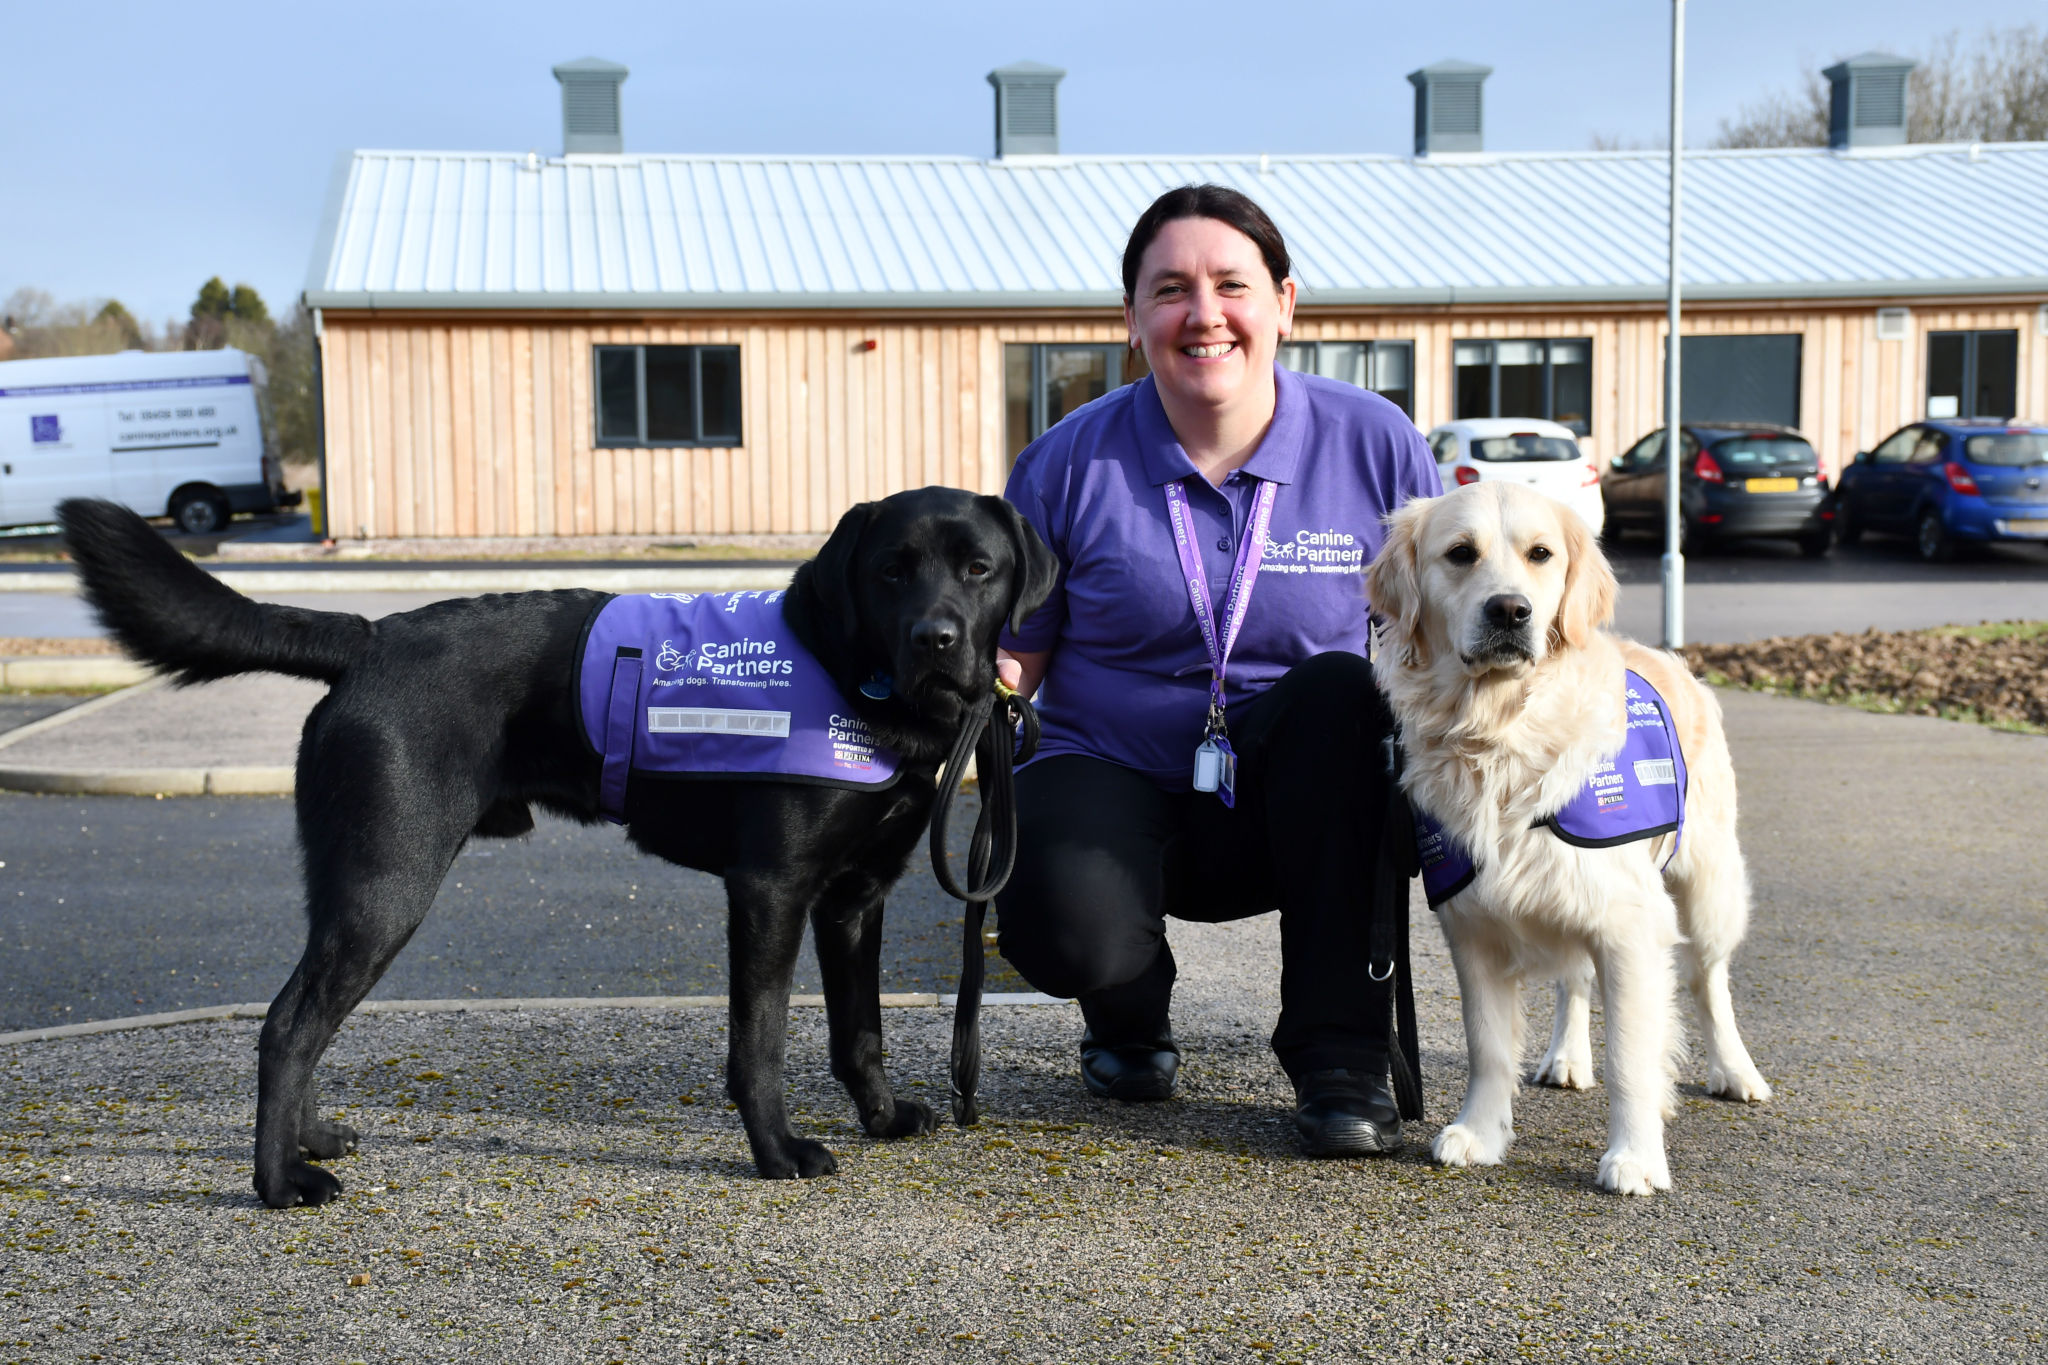 Canine Partners trainer with a golden retriever and black labrador